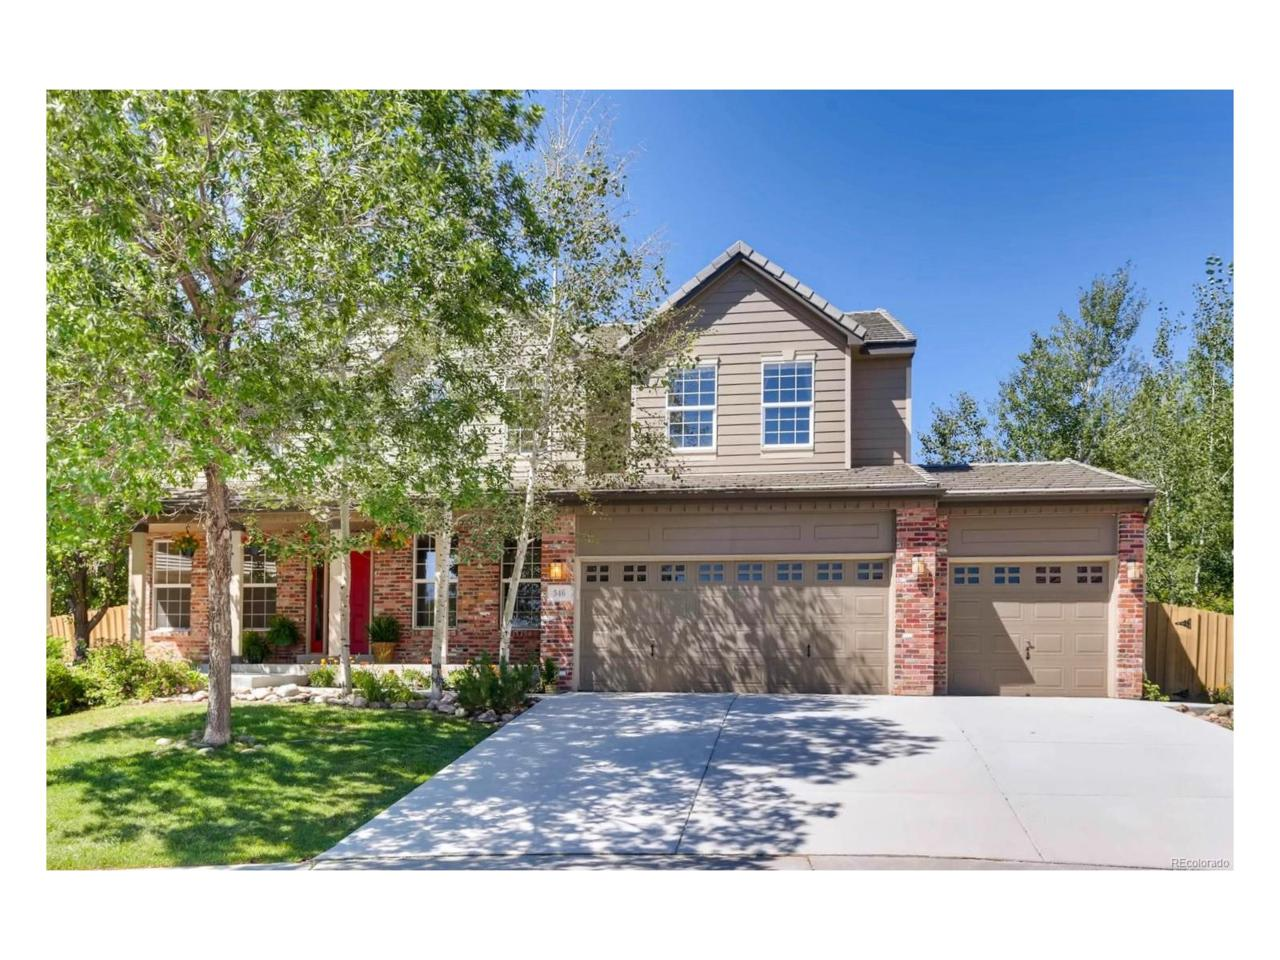 346 Onyx Way, Superior, CO 80027 (MLS #9159368) :: 8z Real Estate